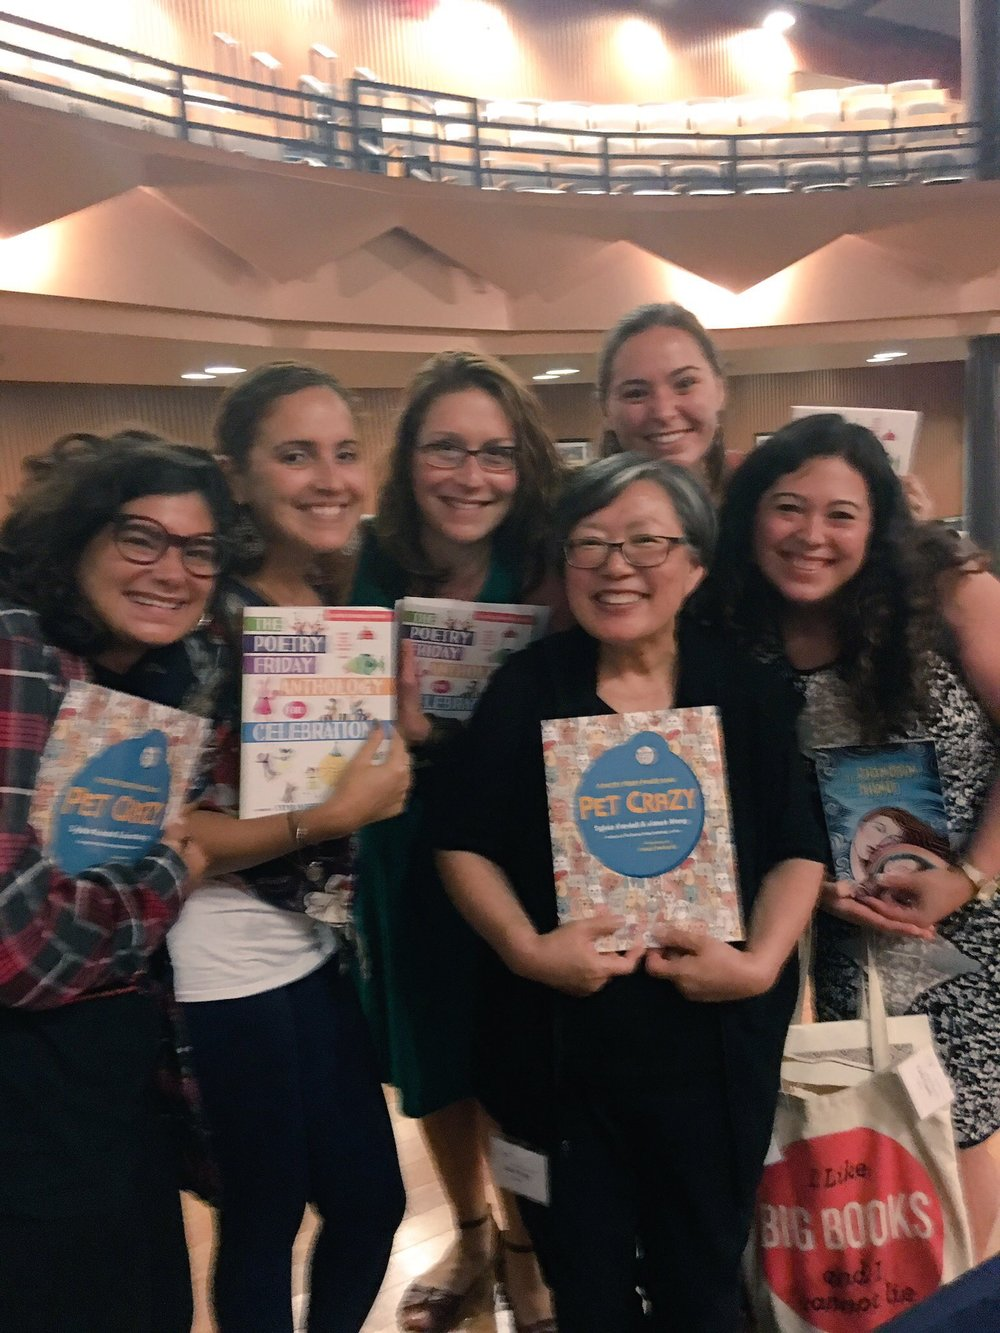 Teacher Love, Poetry Love, Book Love, Janet Wong Love! Friends and Hunter College students, instructors & alumni with the biggest smiles holding some amazing texts!